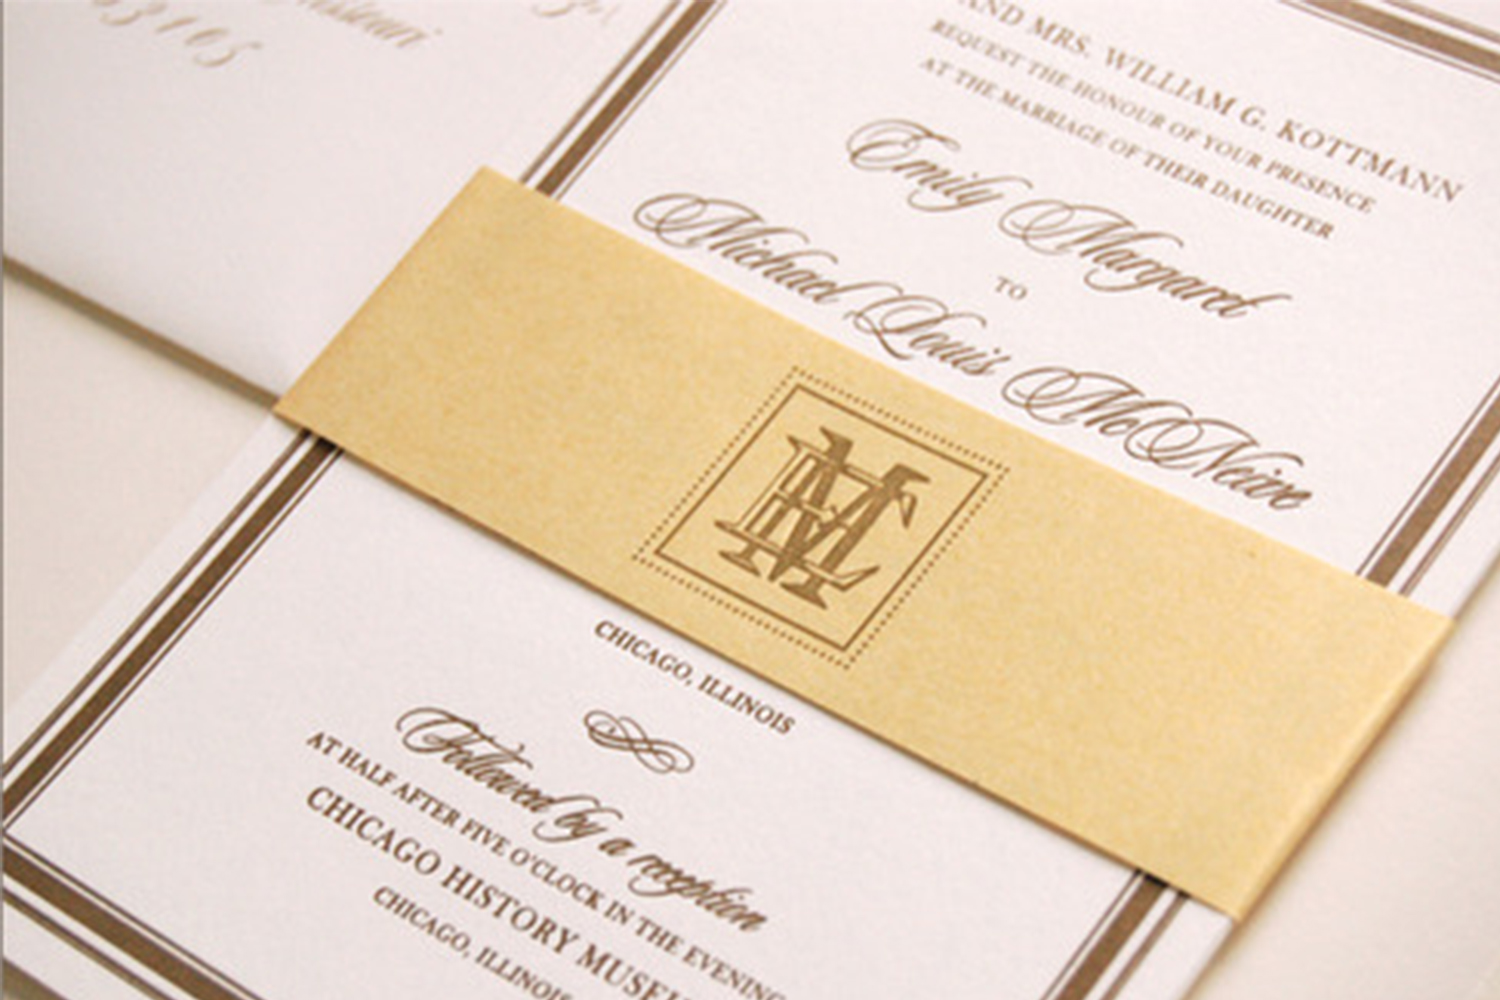 How To Write Invitation For Wedding: How To Write Junior And Senior On Your Wedding Invitation